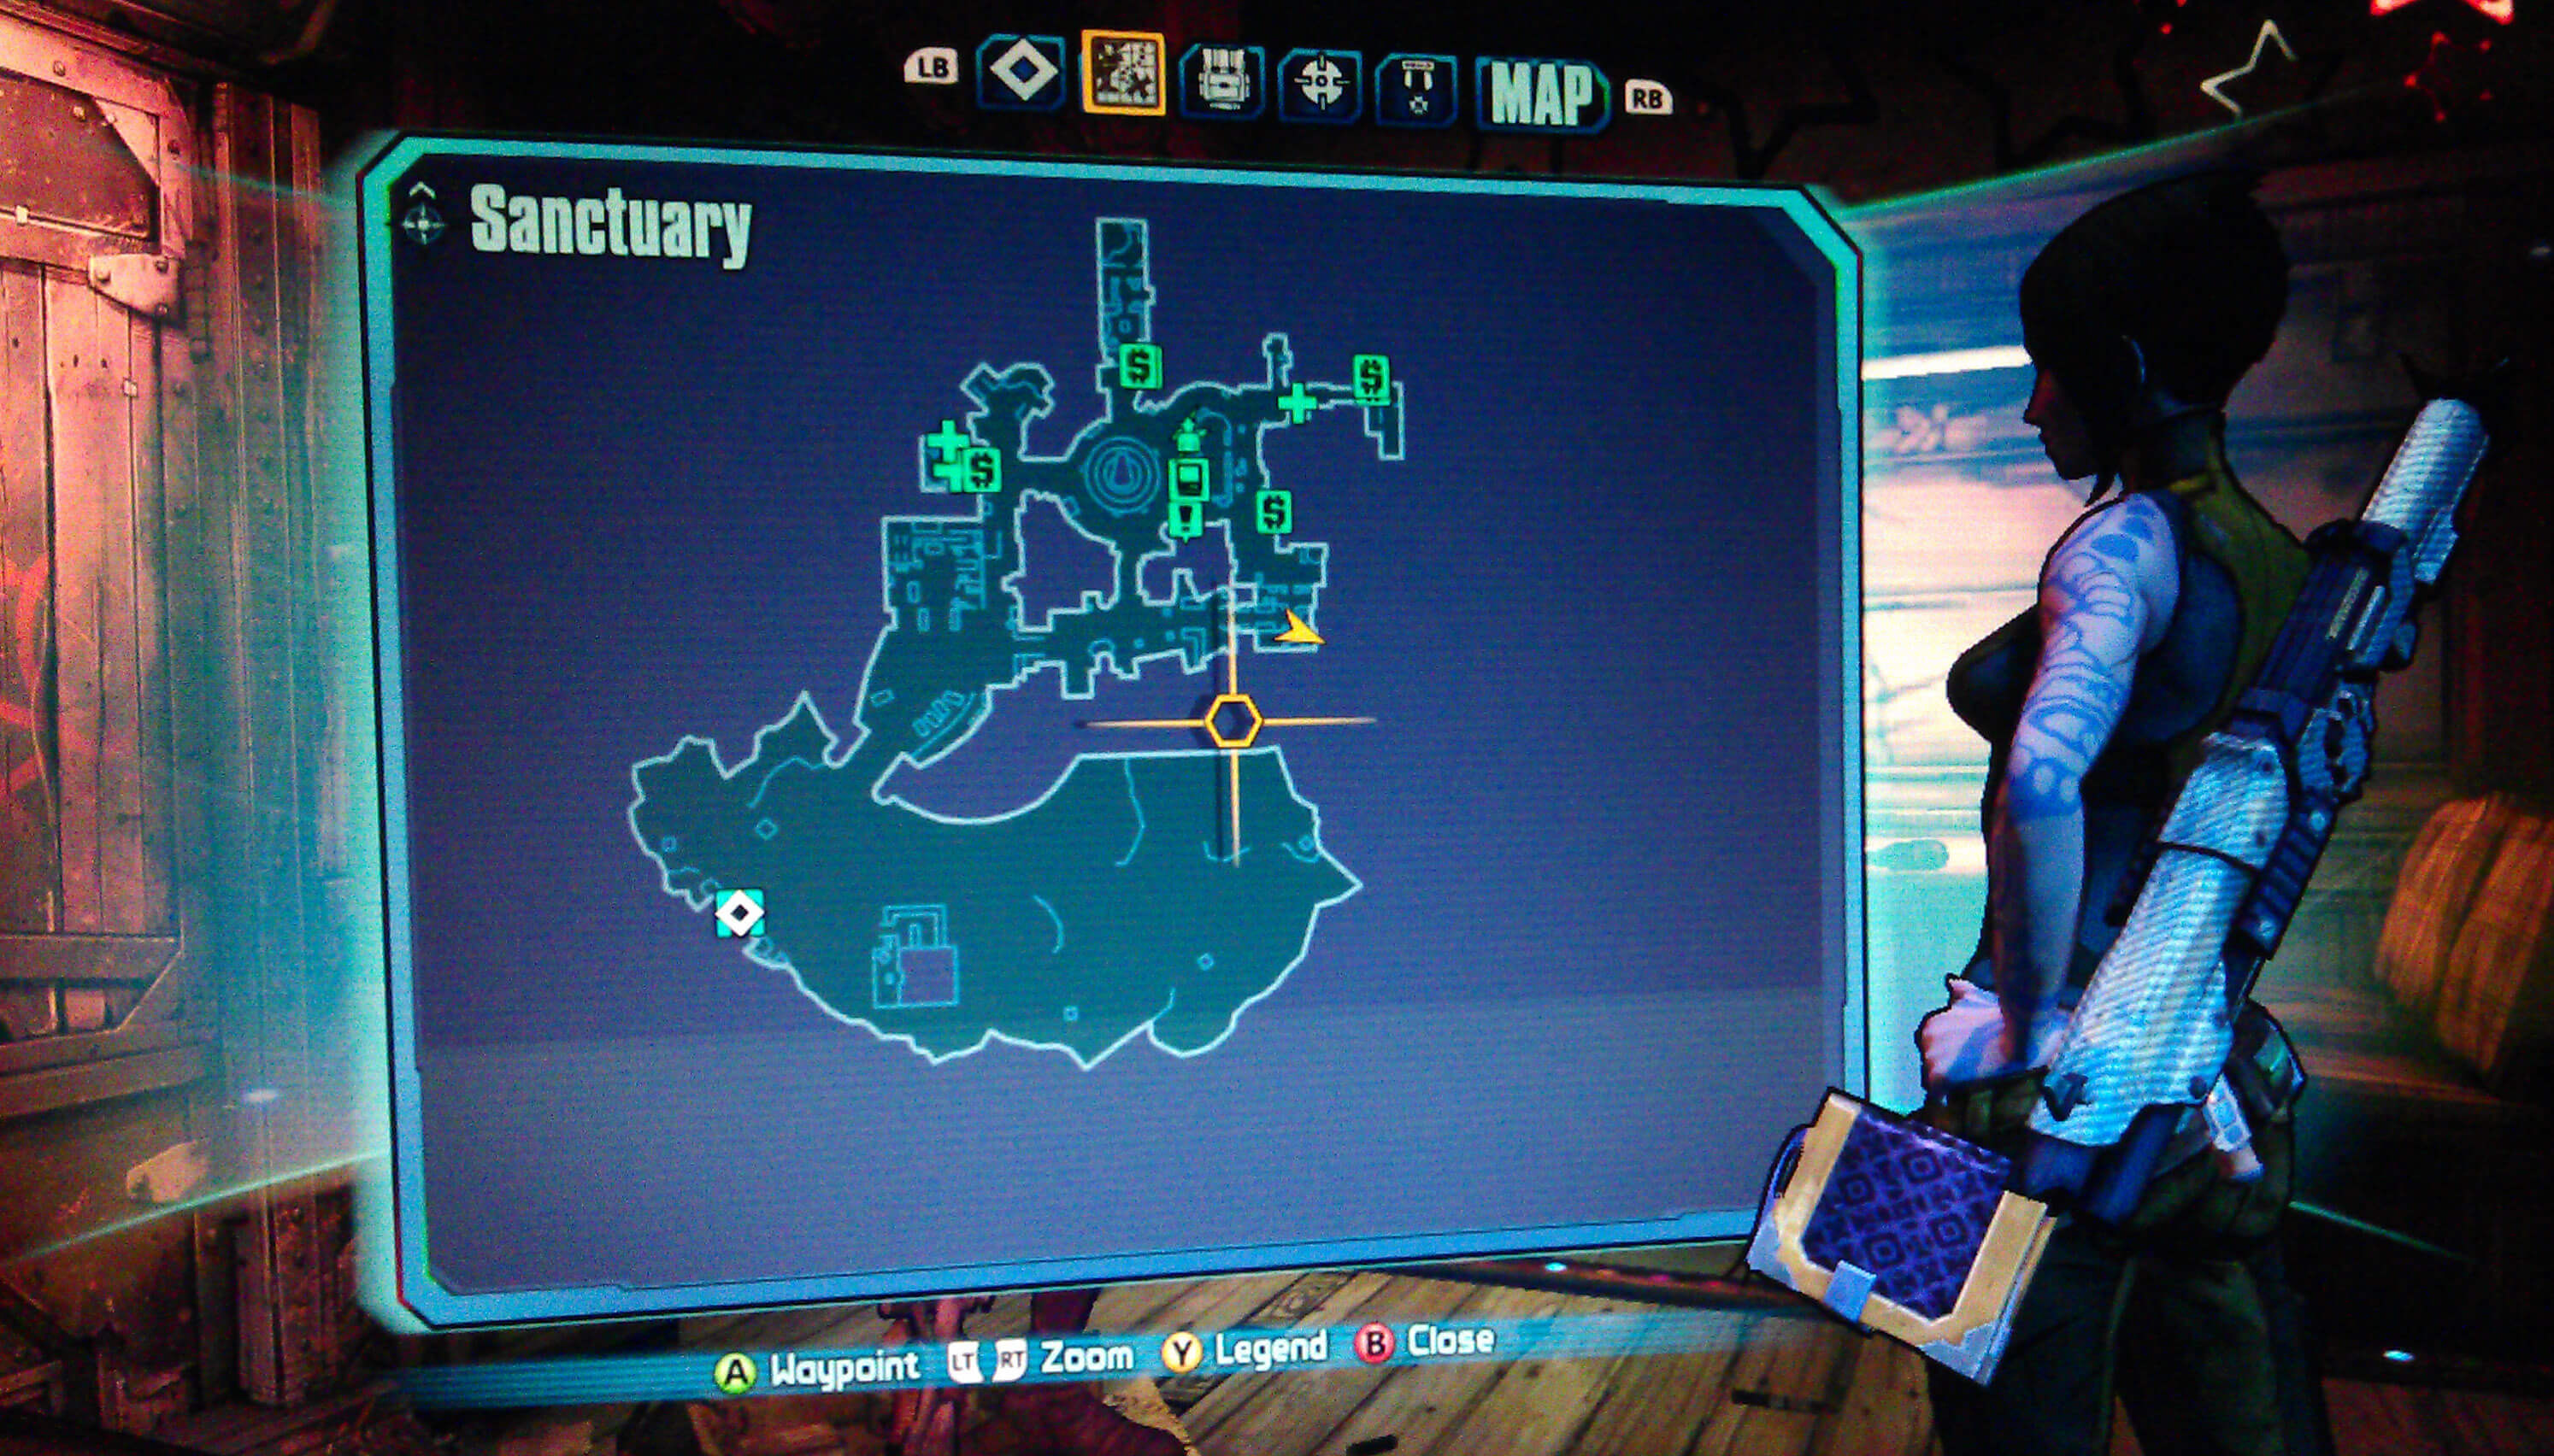 Borderlands 2 Sanctuary Walkthrough - VGFAQ Borderlands 2 Walkthrough